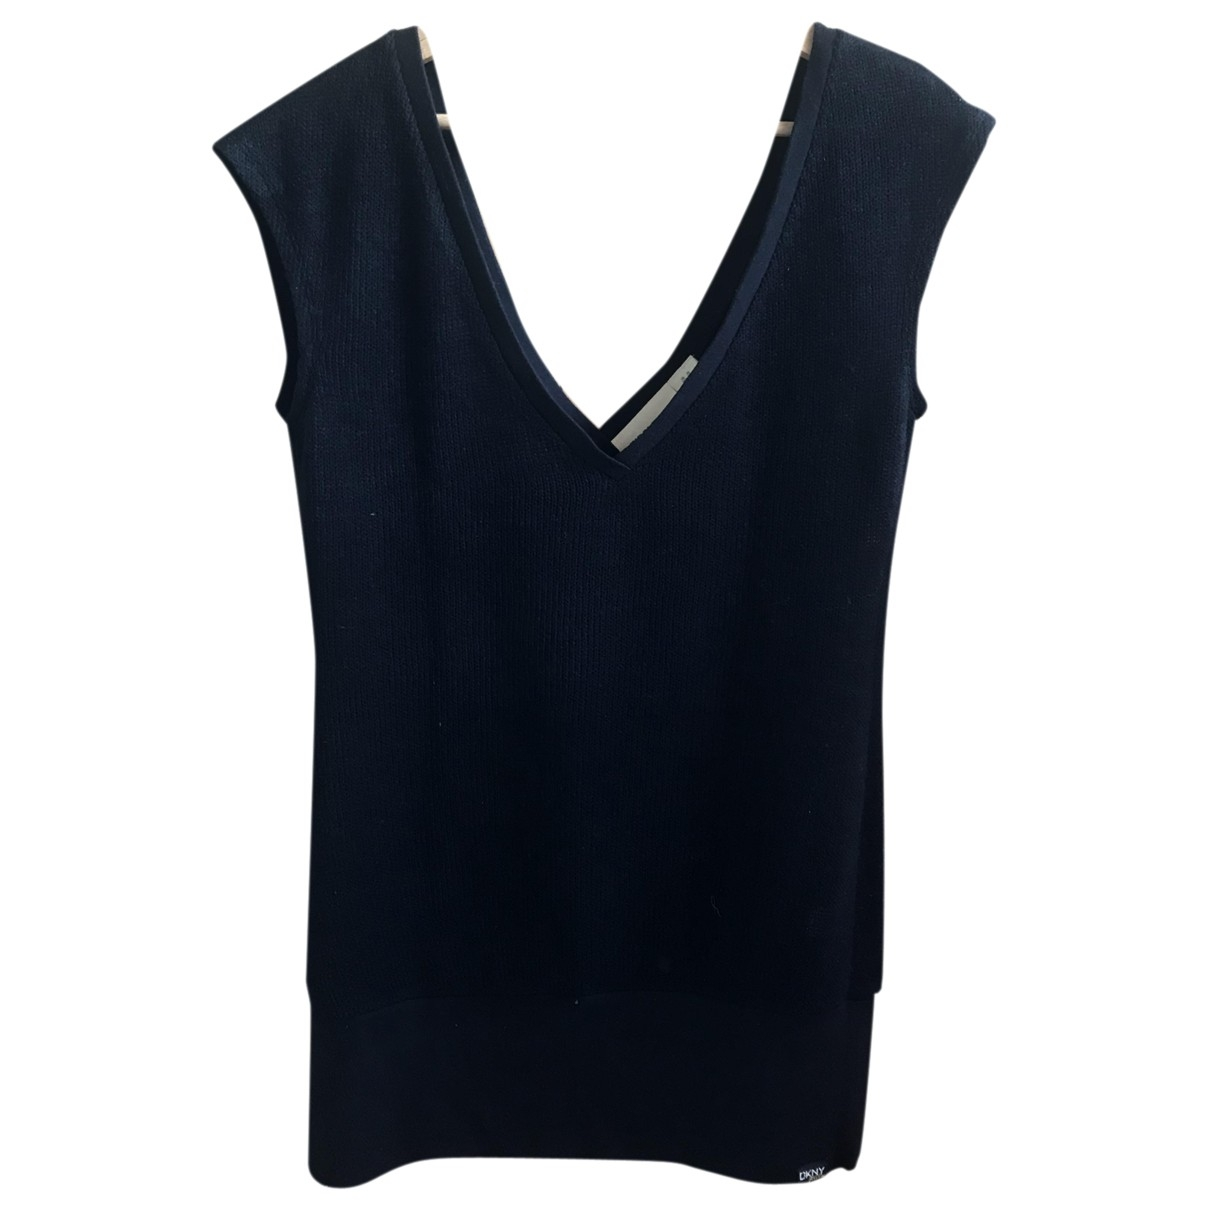 Dkny \N Black  top for Women XS International